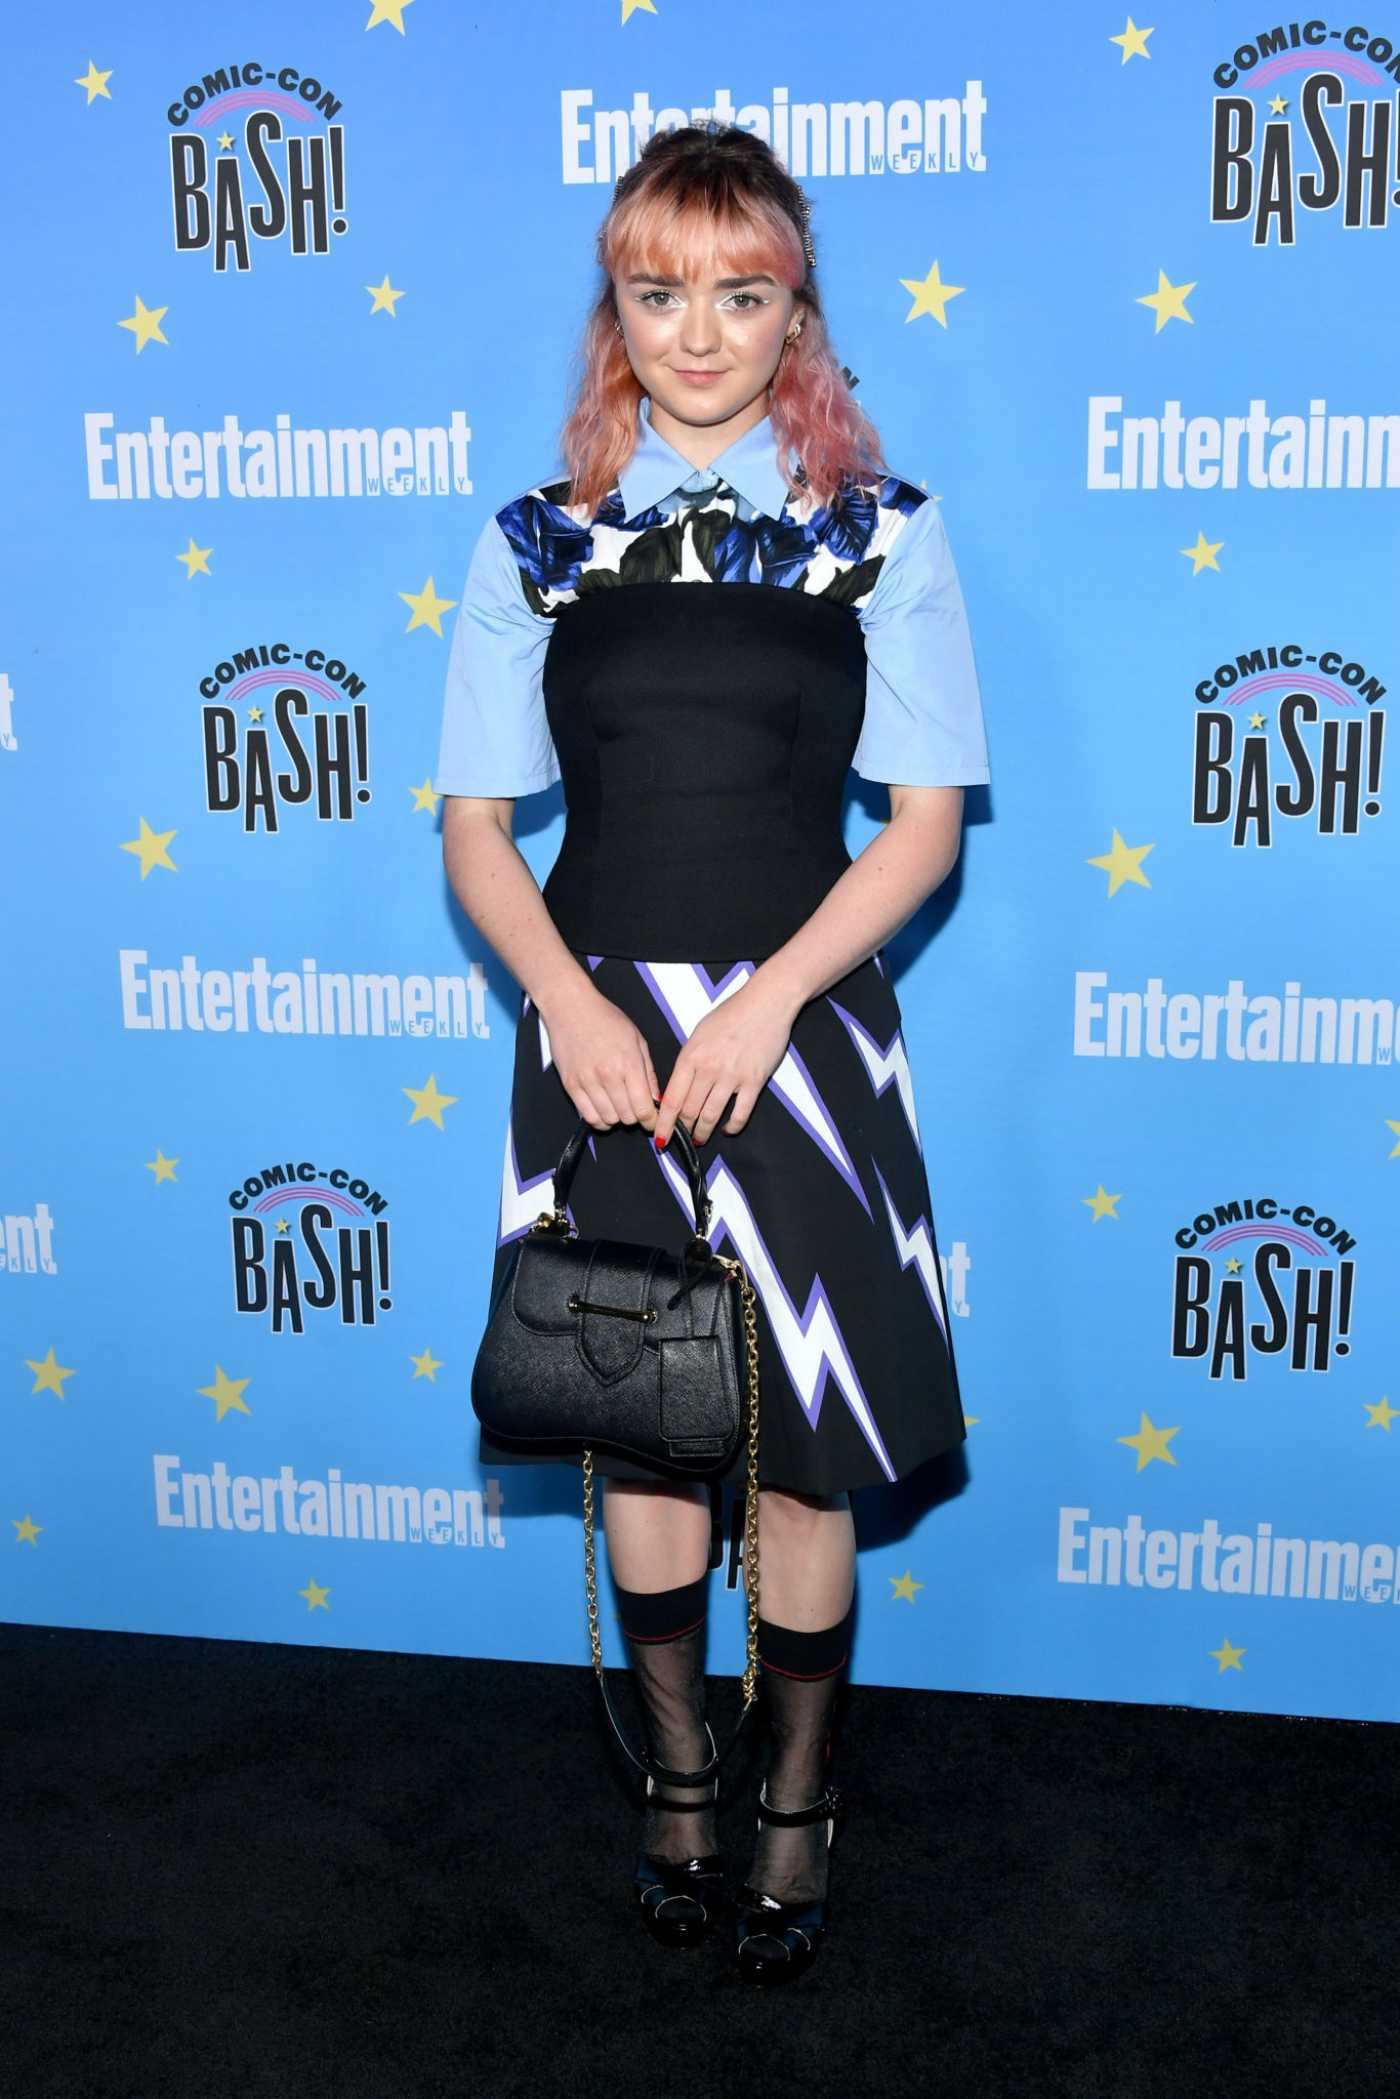 Maisie Williams Attends Entertainment Weekly's Comic-Con Bash in San Diego 07/20/2019